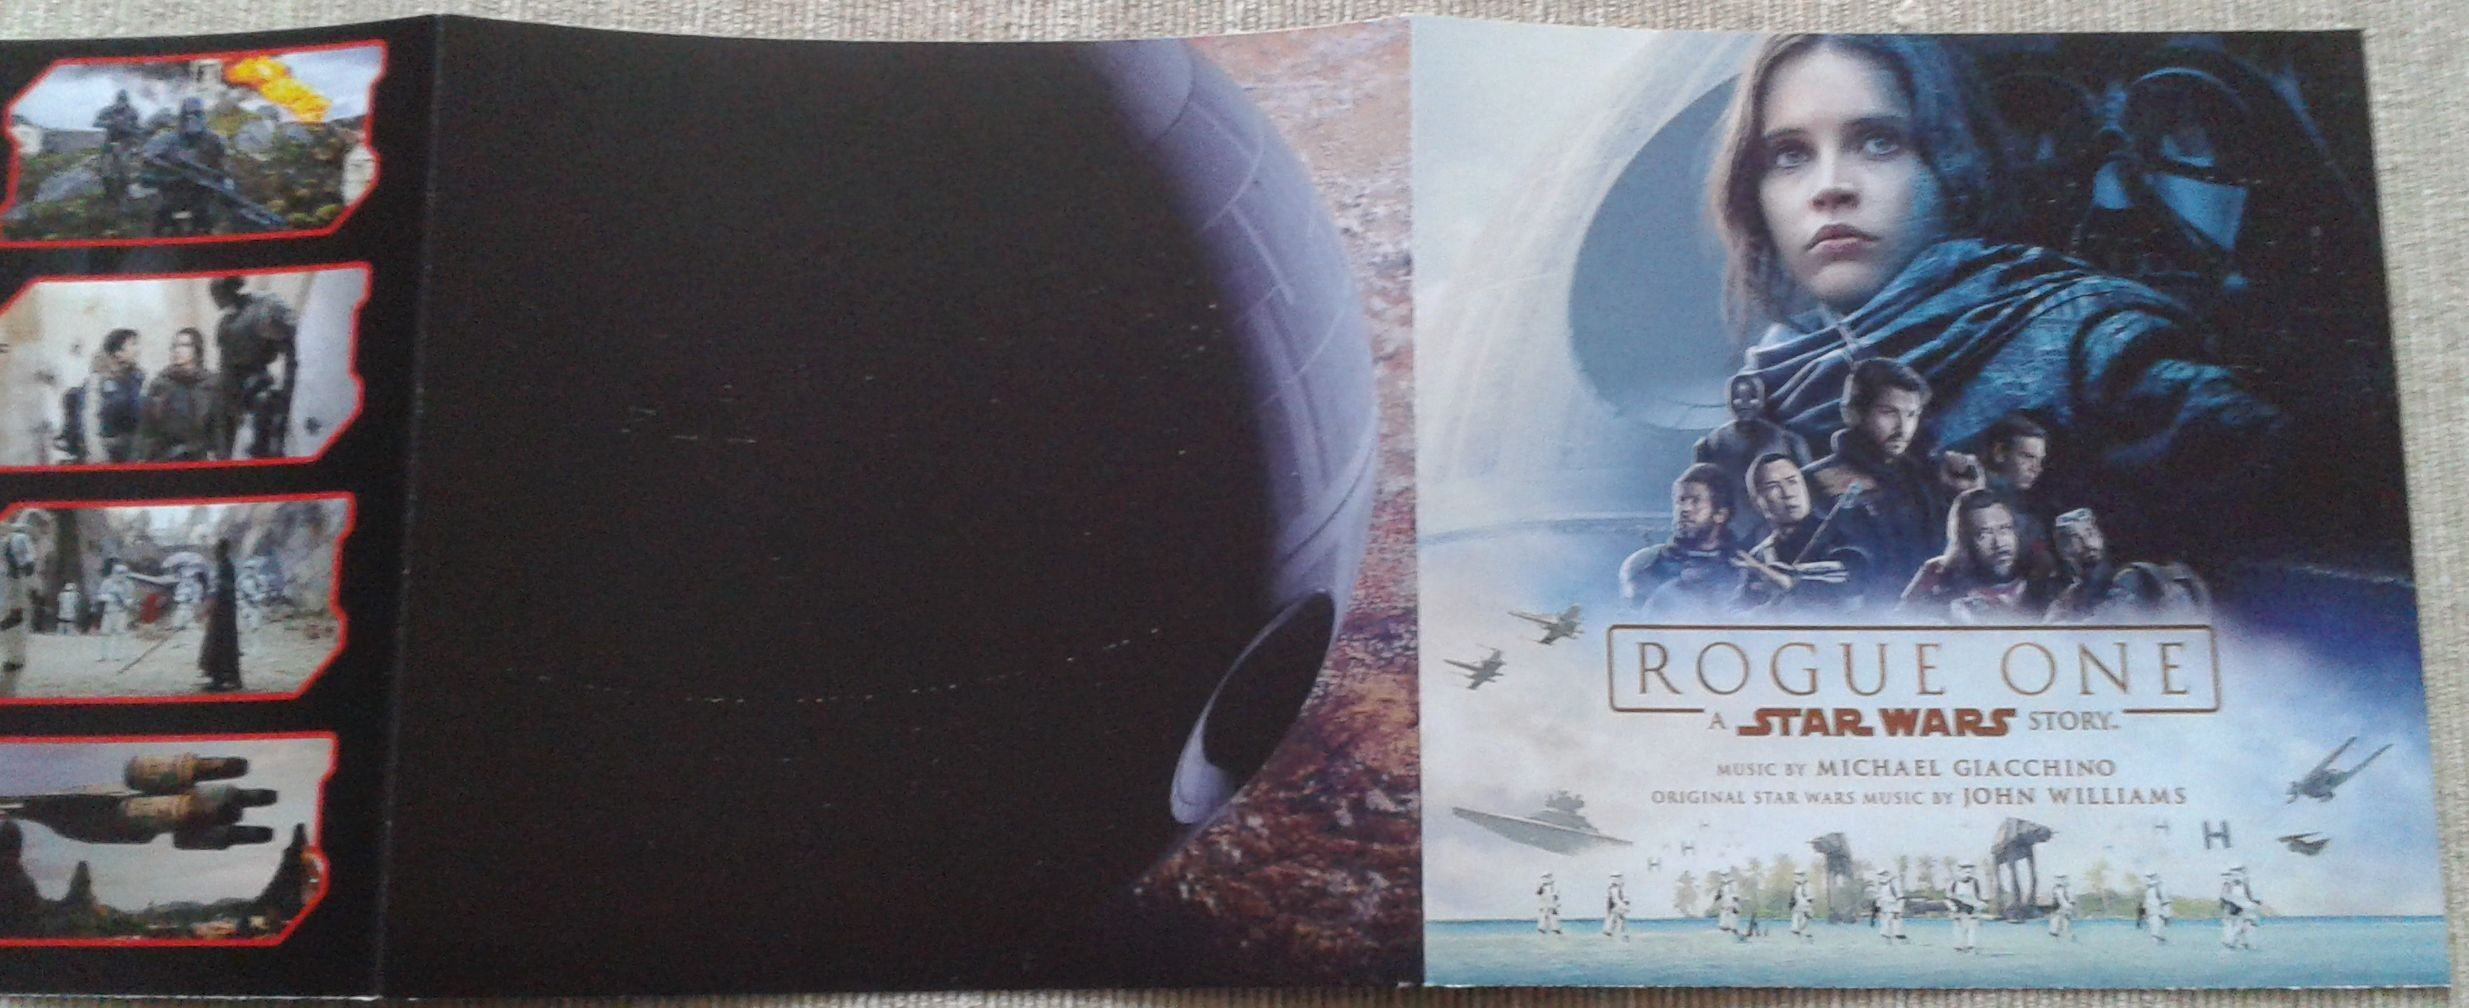 9. Rogue 1 SW booklet 5.jpg